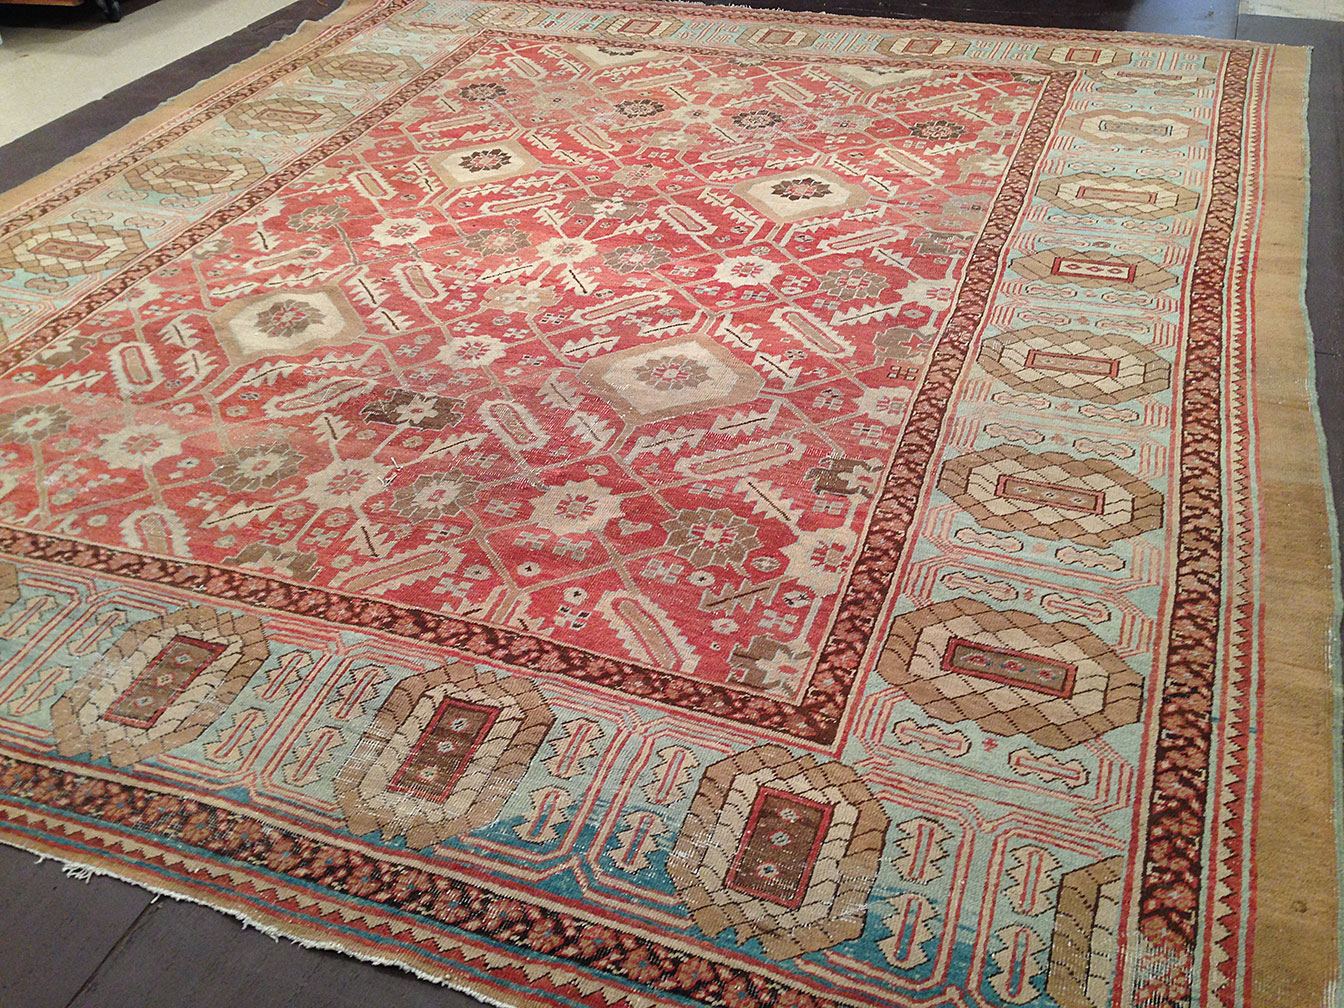 Antique bakshaish Carpet - # 50704